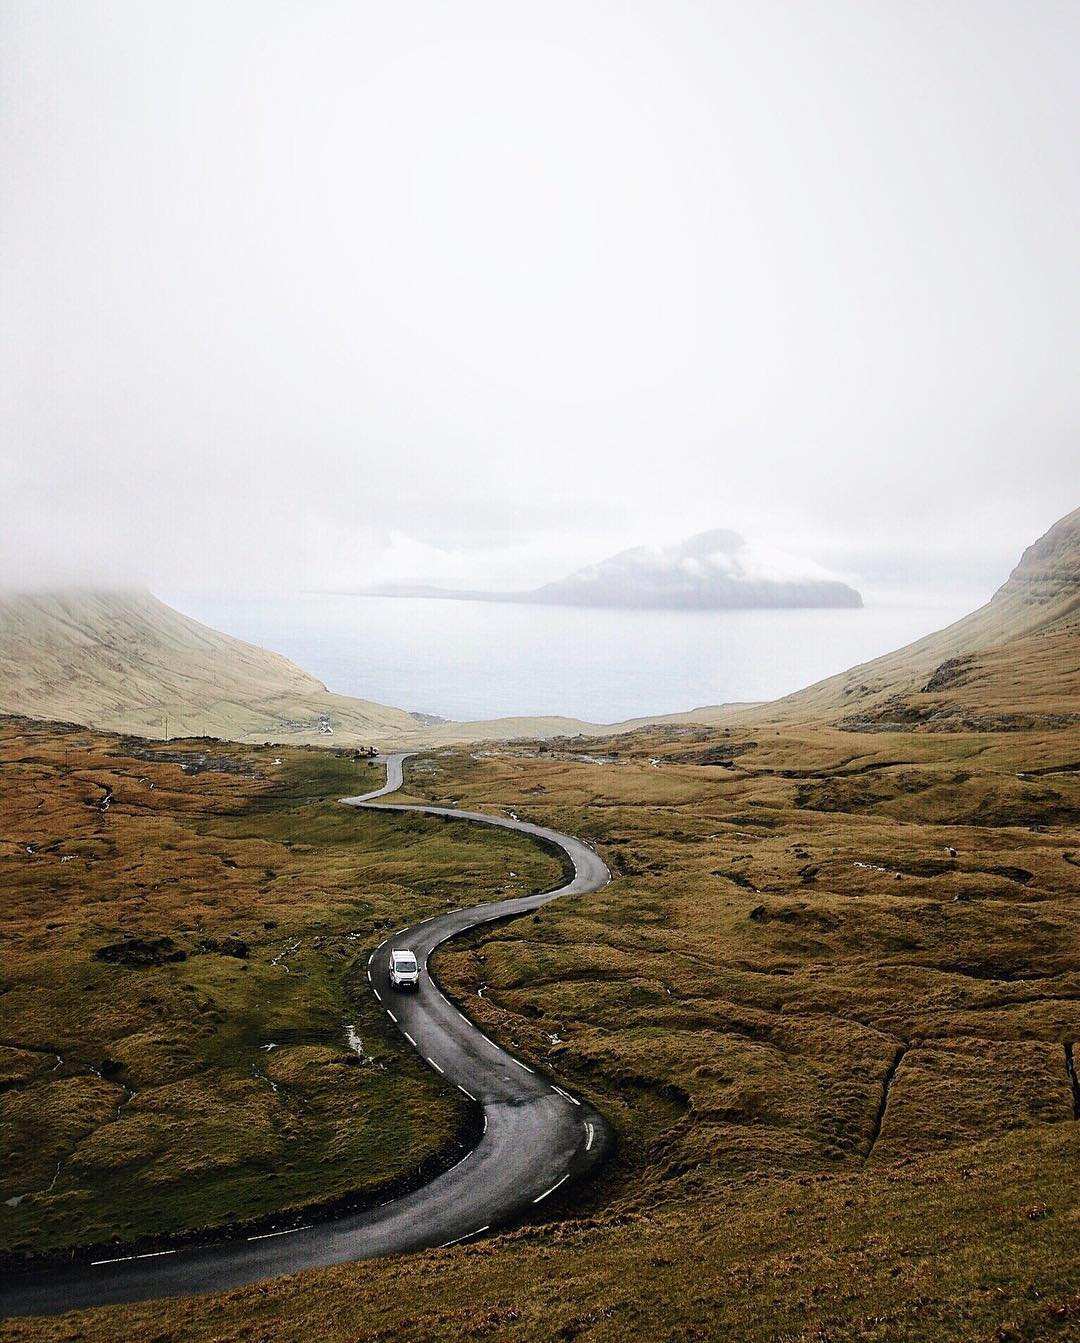 Our friends at ƒ/8 Workshops (@thefella, @greg_a, @zobolondon) find their way to some of the most stunning places on earth. They took some Peak gear to the Faroe Islands and grabbed some absolutely stunning pictures. Check out their story in our Field...